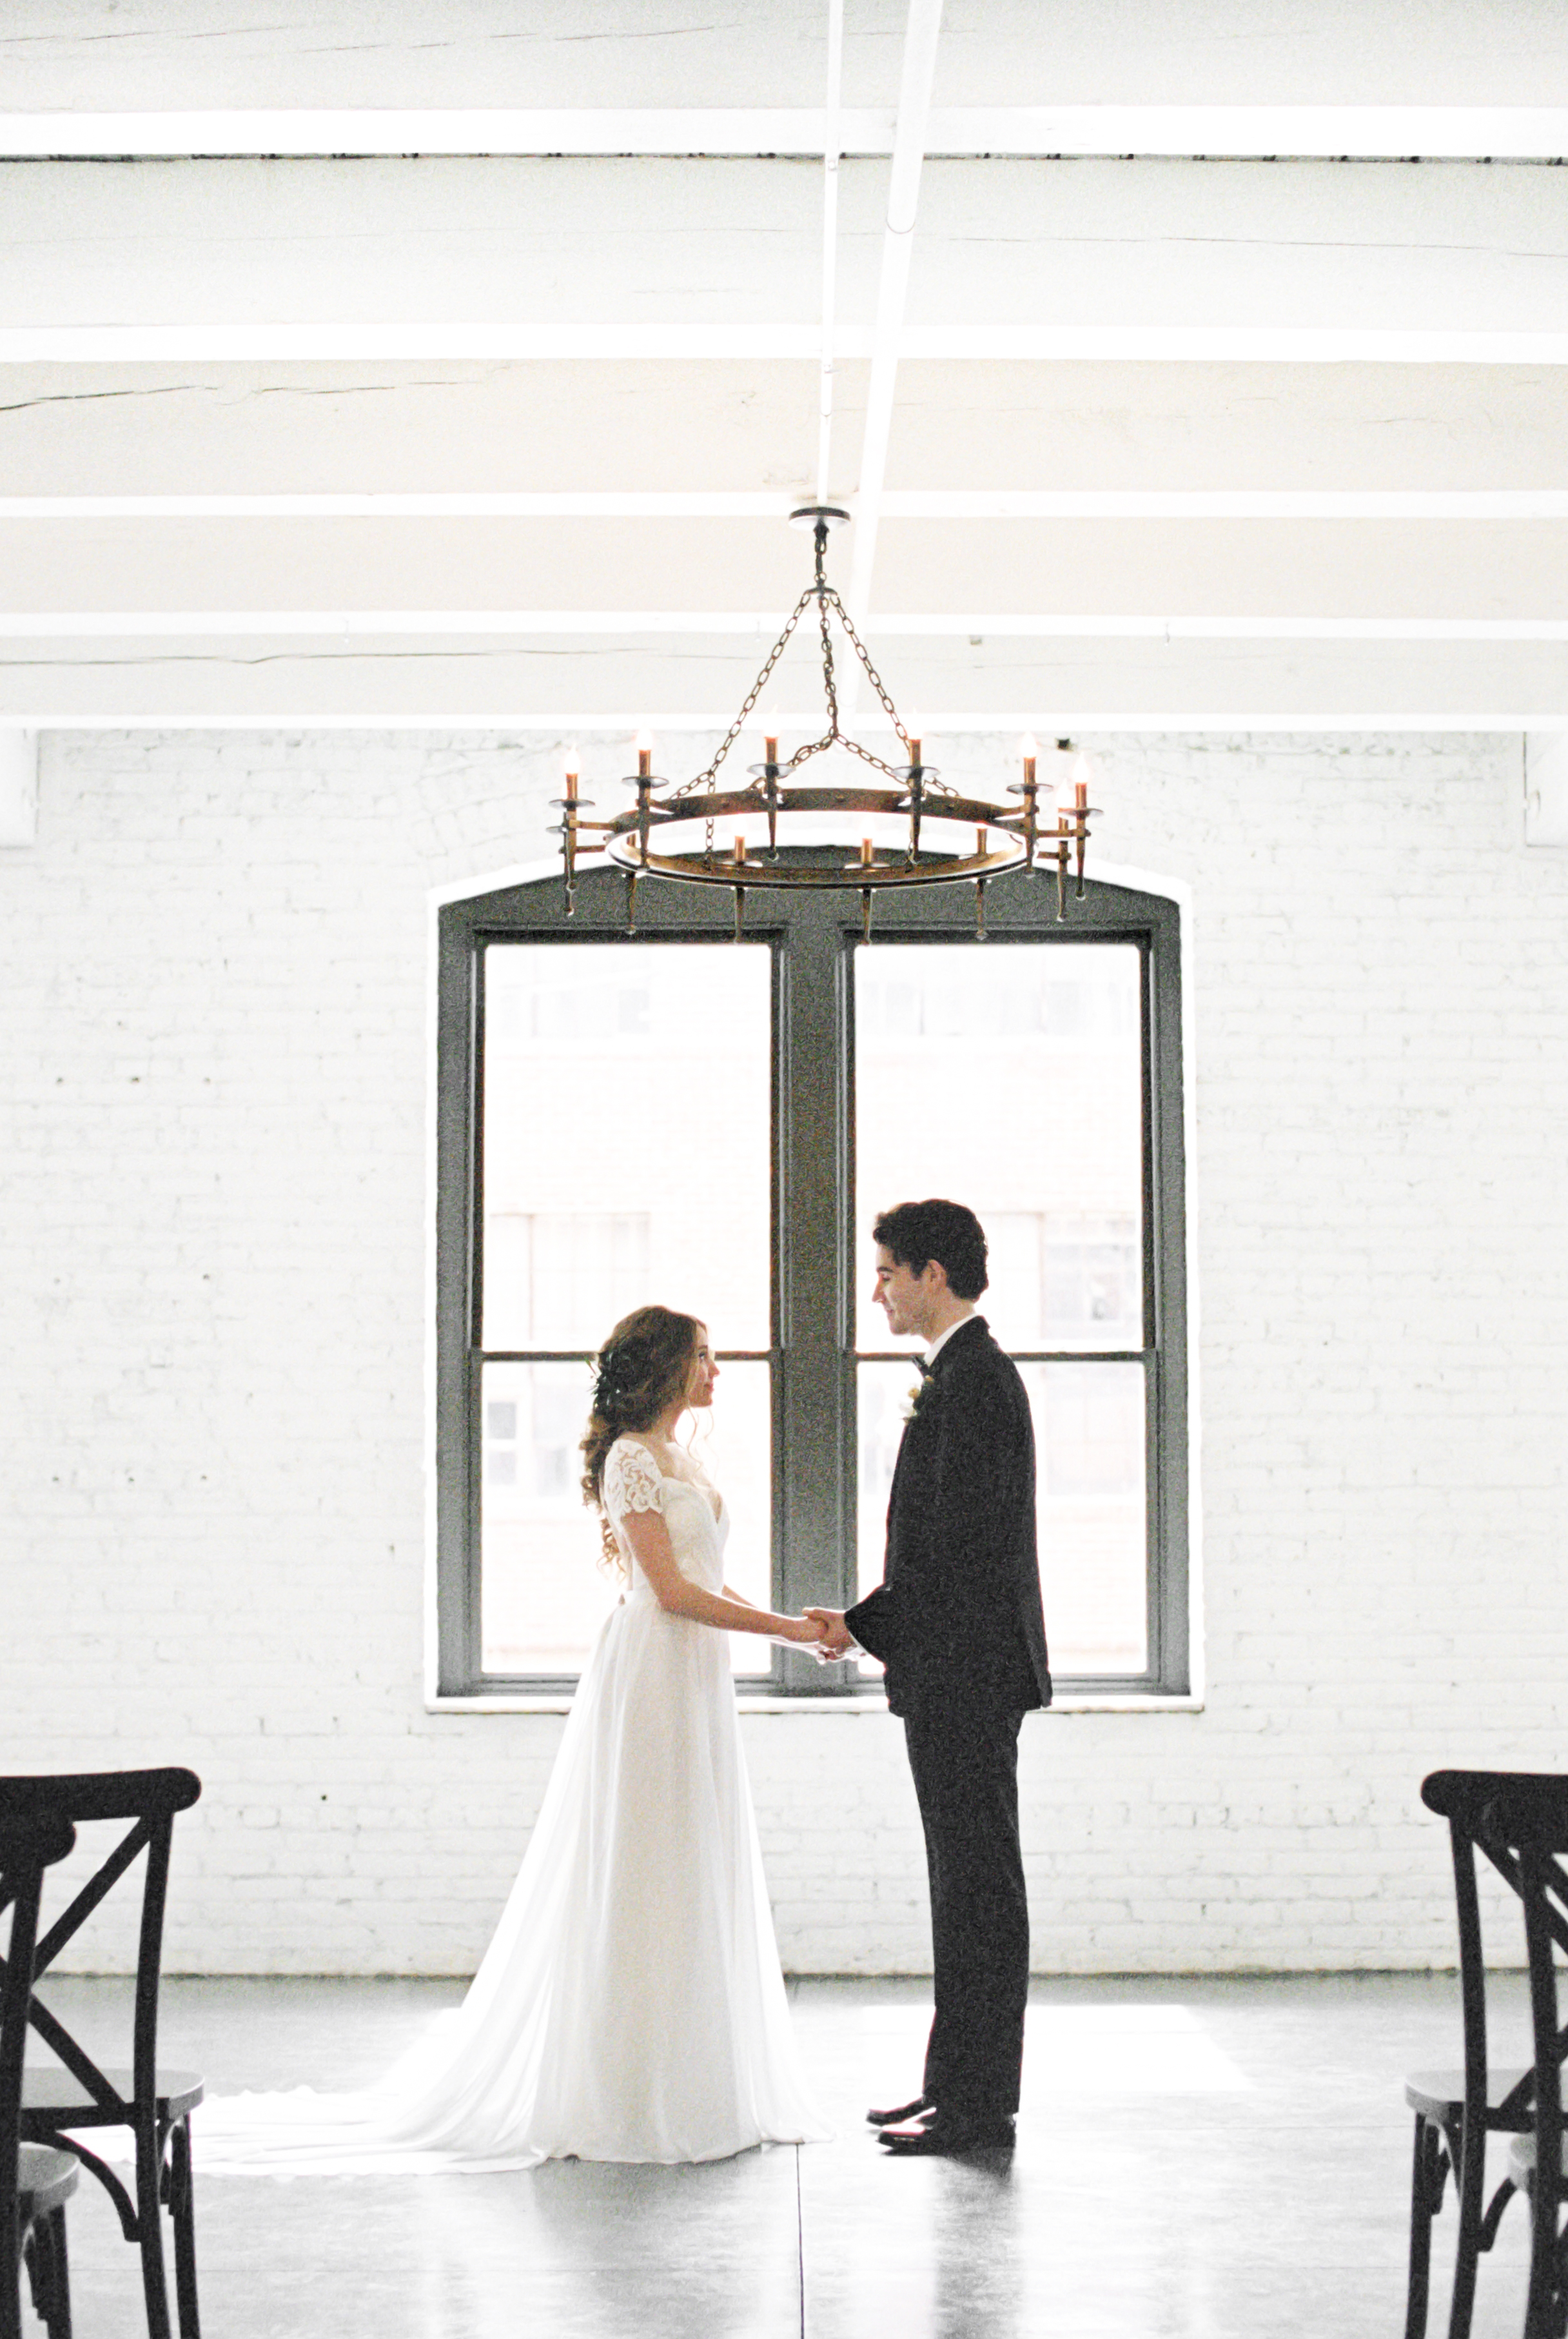 Boho bride and groom pose for wedding photos at modern wedding venue for wedding ceremony for this Chicago wedding styled shoot. Find more wedding inspiration at chitheewed.com!